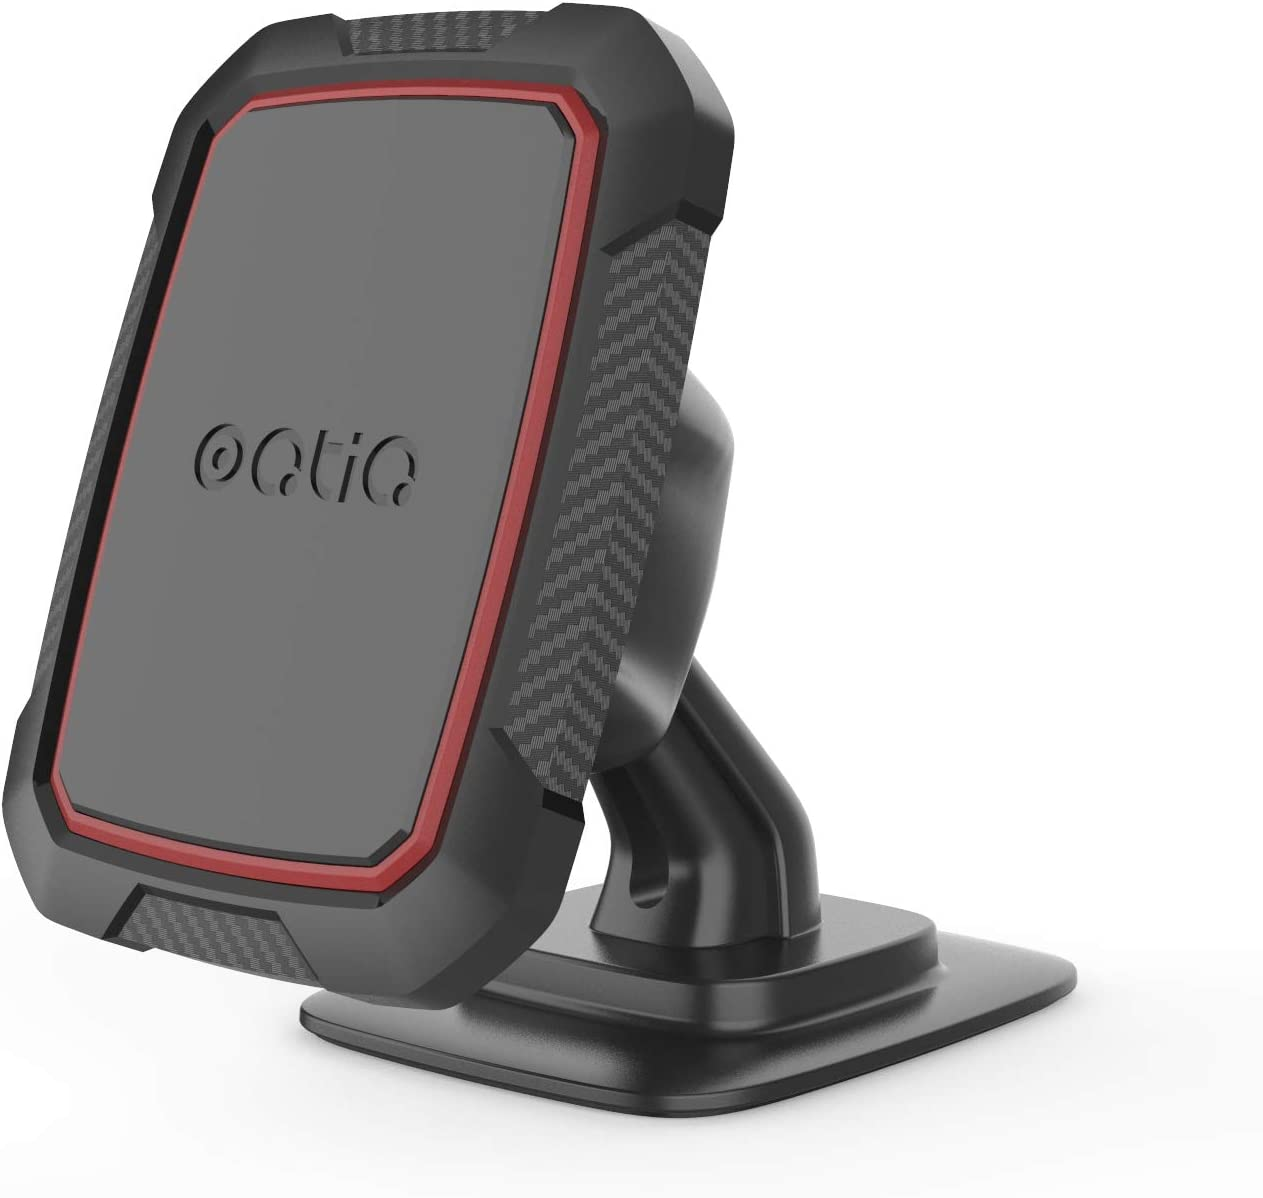 OQTIQ Magnetic Phone Car Mount, Hands Free Phone Holder for Car with Strong VHB Adhesive Stick on Dashboard, Phone Holder Office Desk Stand Powered by 6 Strong Magnets